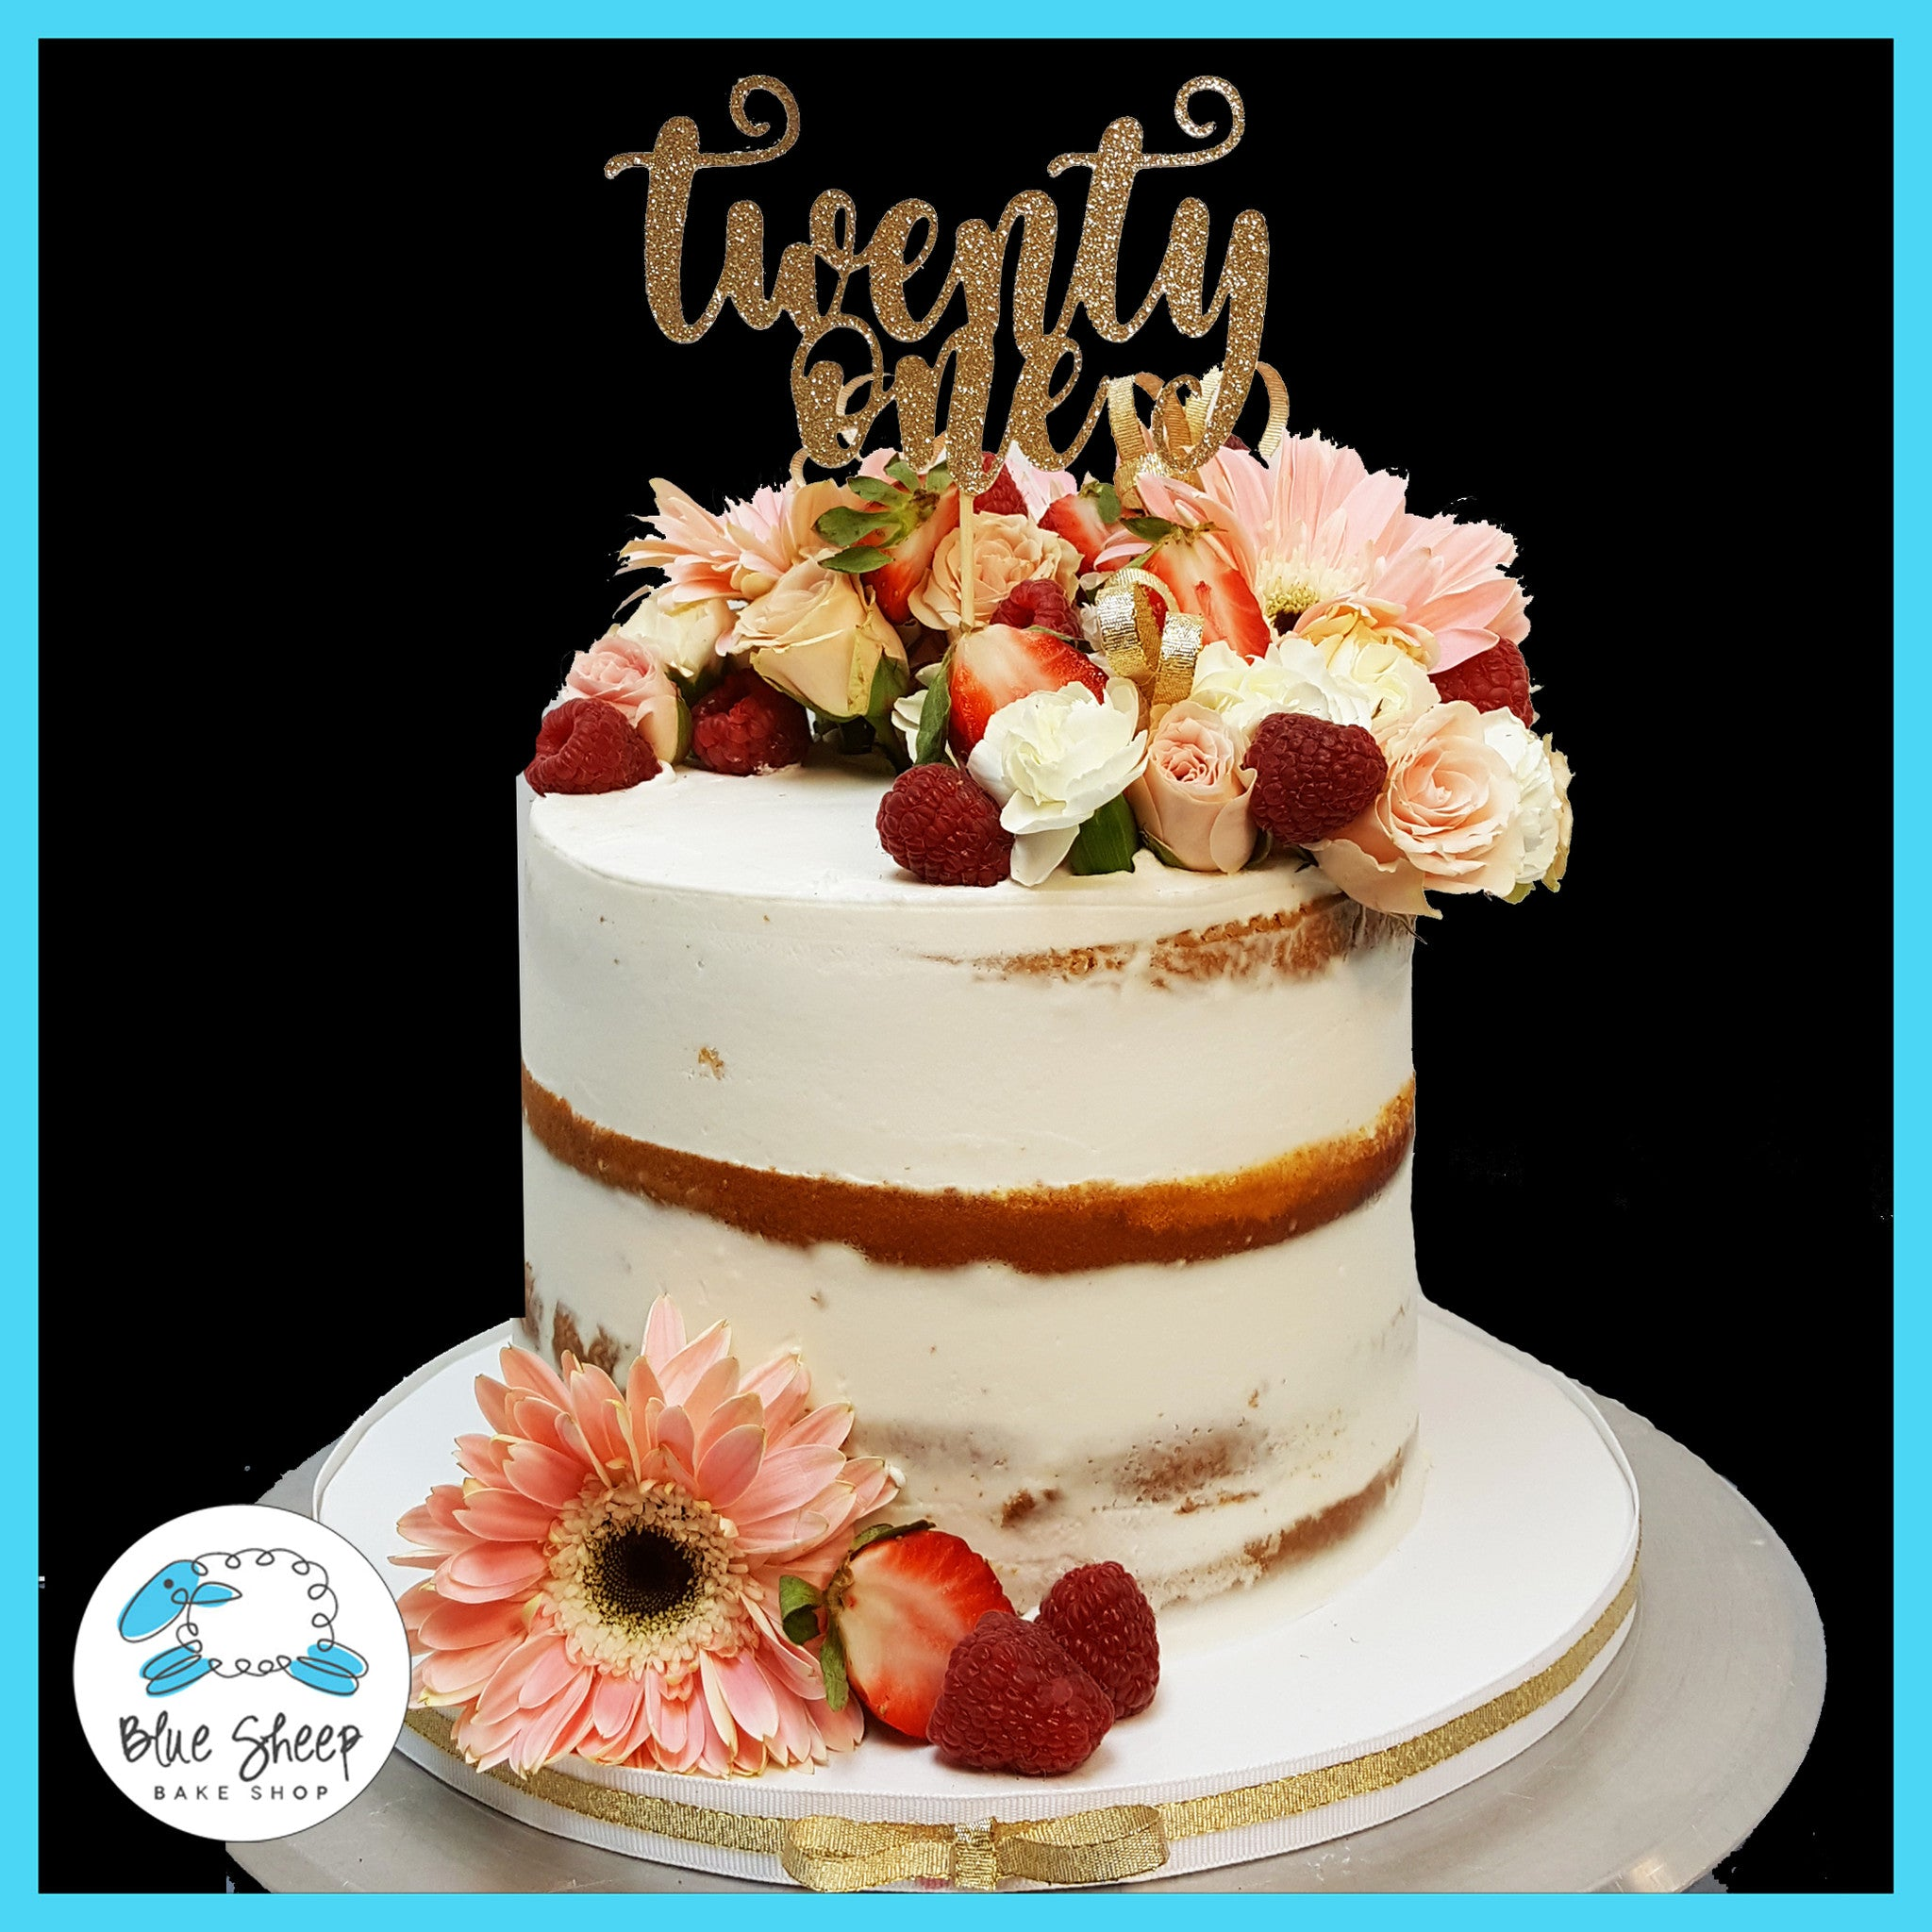 Naked 21St Birthday Cake With Fresh Blooms And Berries-9972